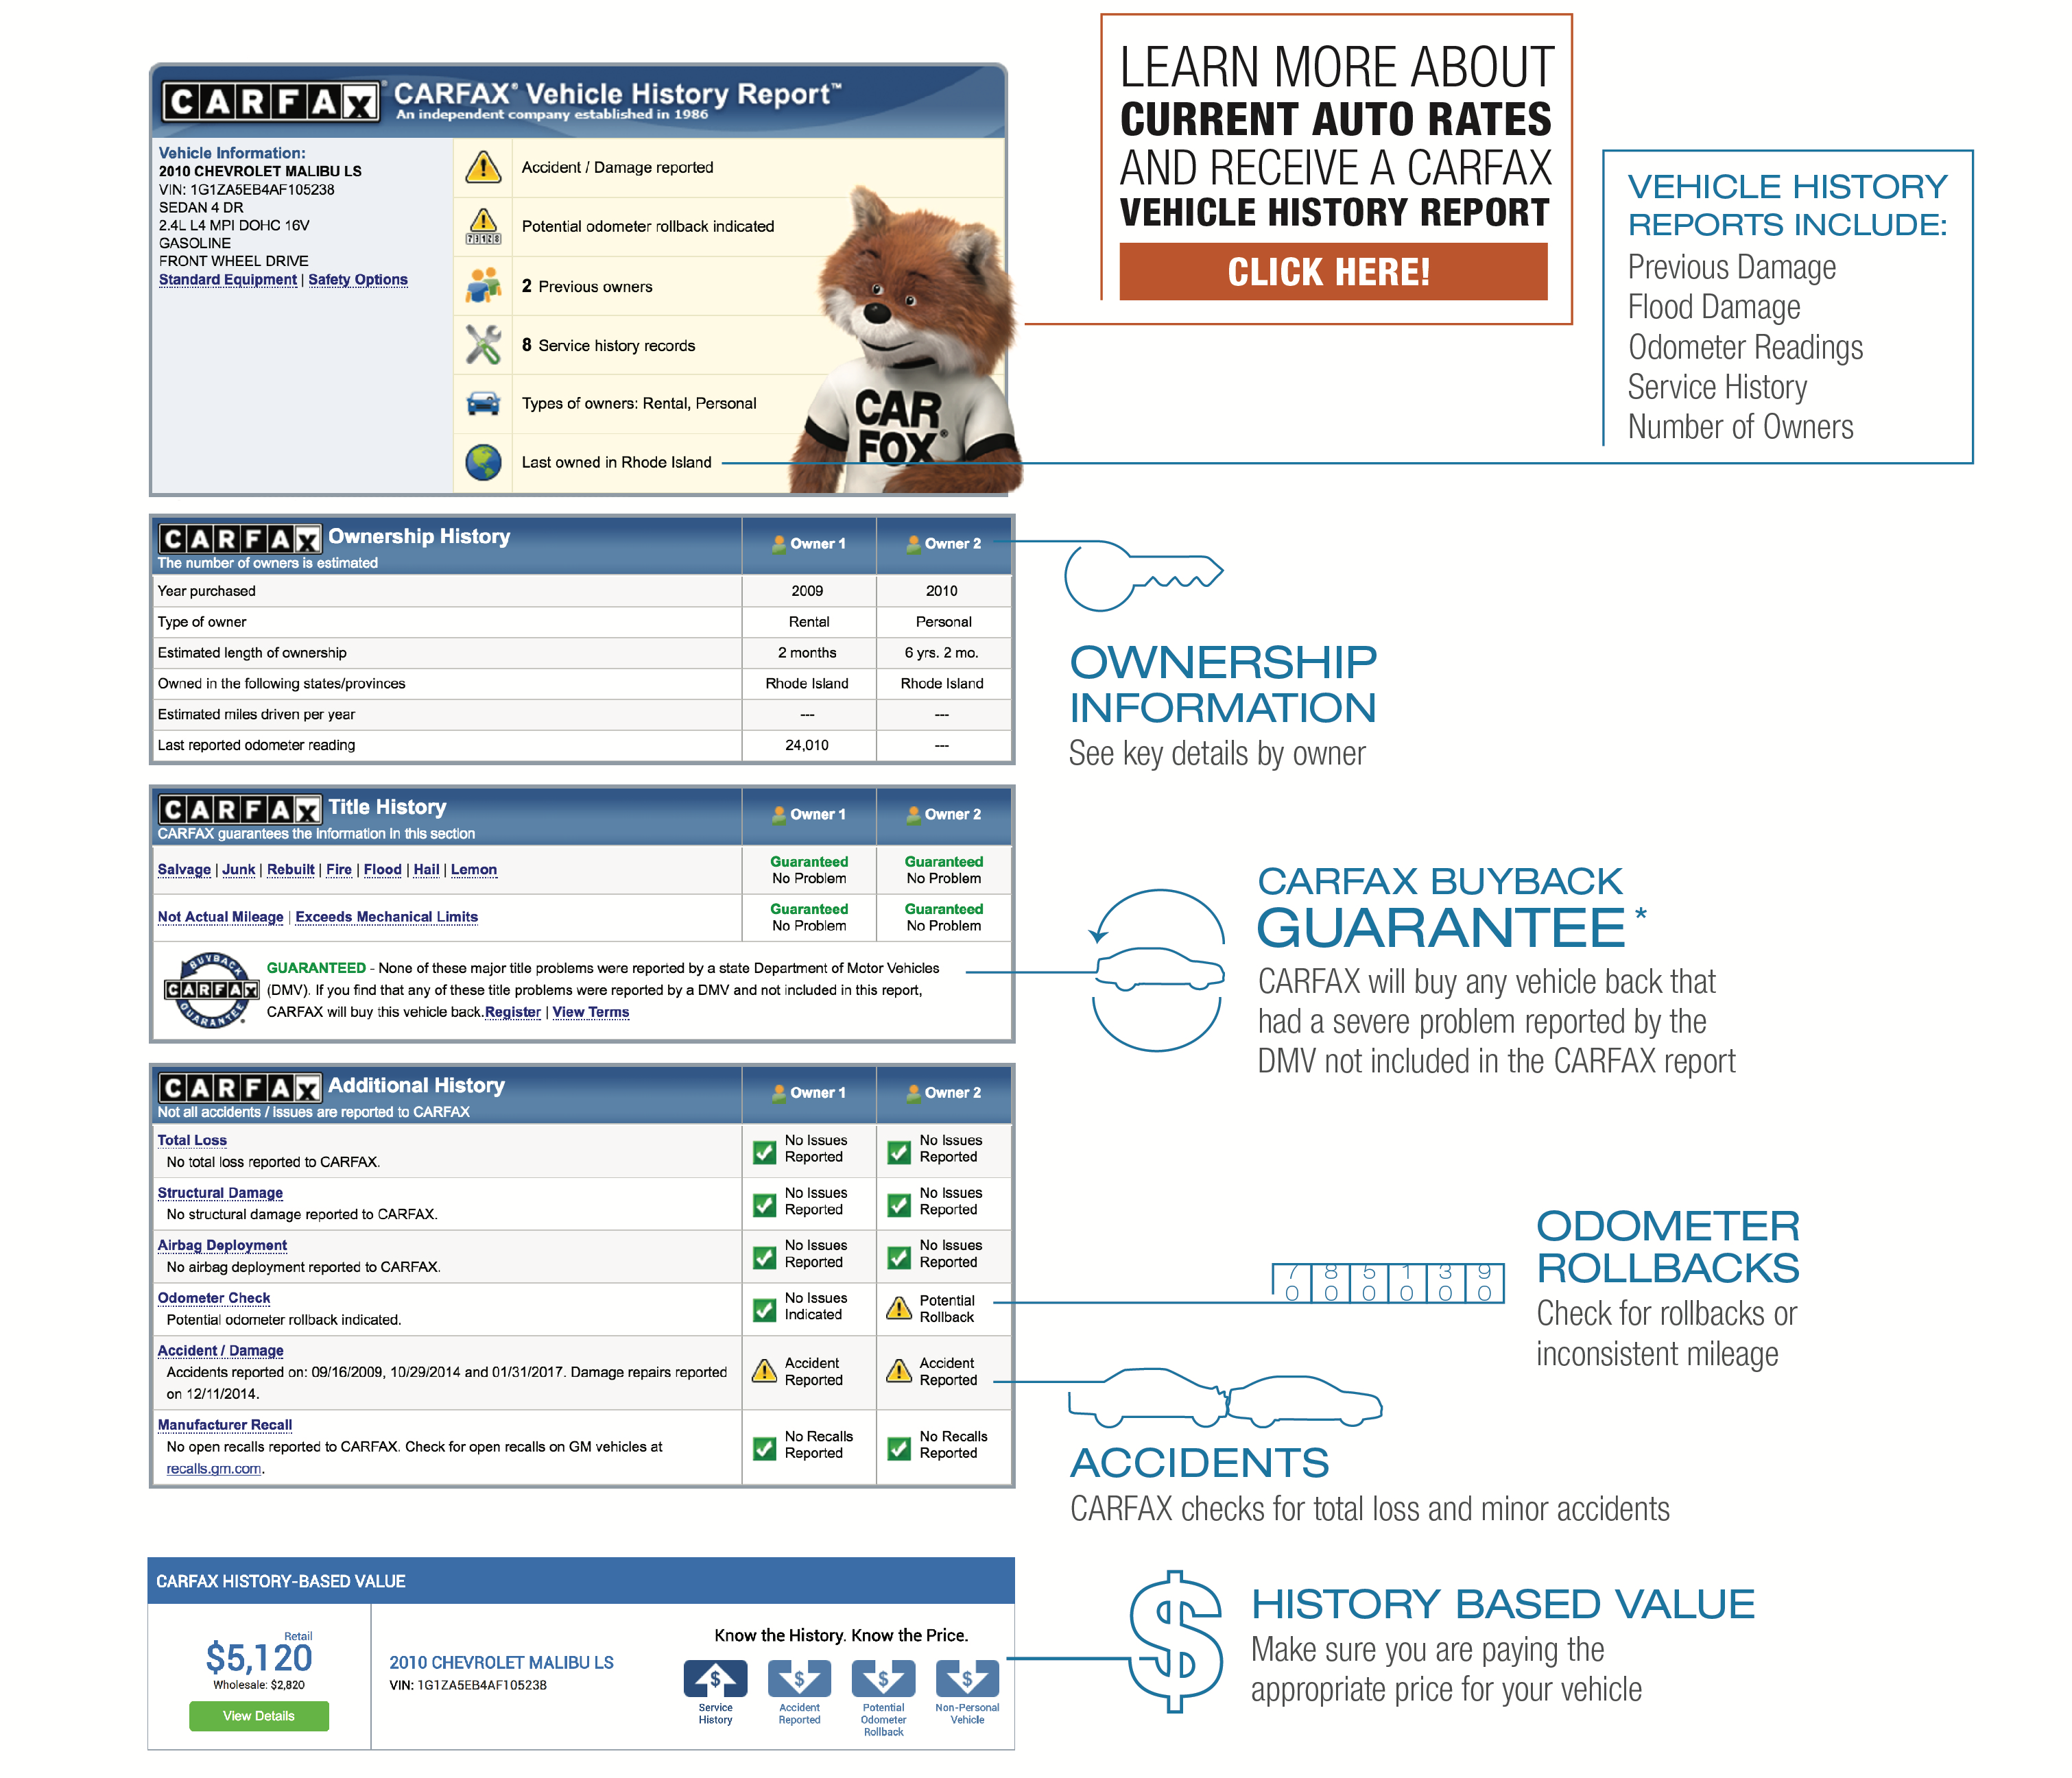 Free Carfax Information Beautiful Carfax Banking and Insurance Group More Information Better Decisions